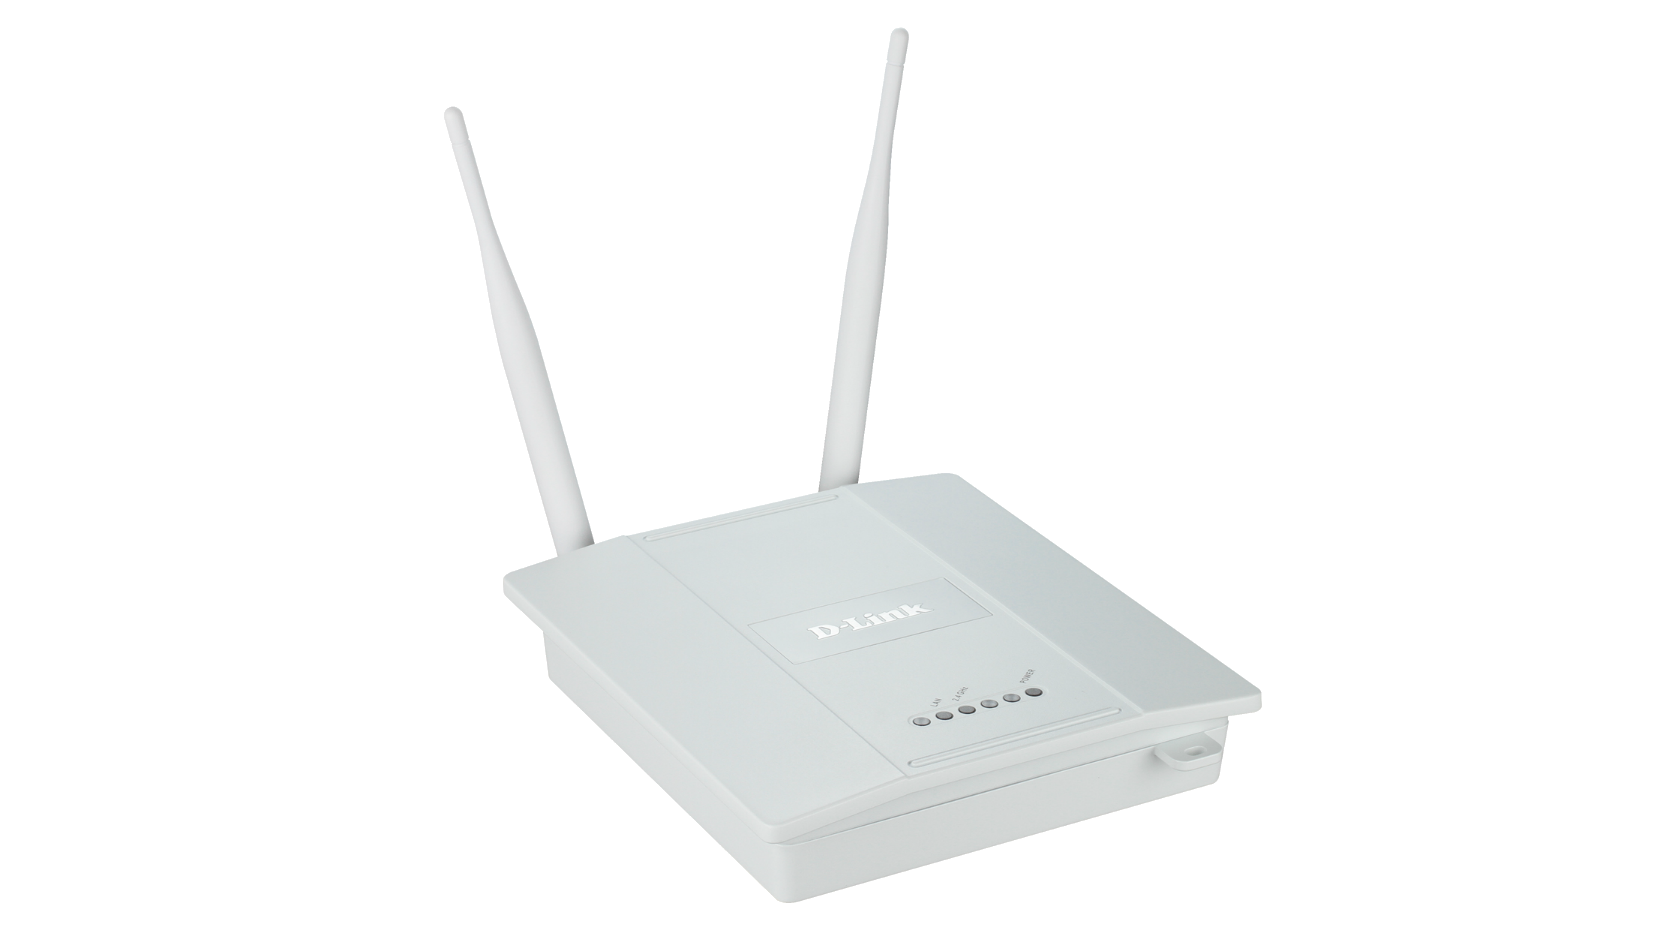 D-LINK DAP-2360 REV.B2 ACCESS POINT WINDOWS 8.1 DRIVER DOWNLOAD